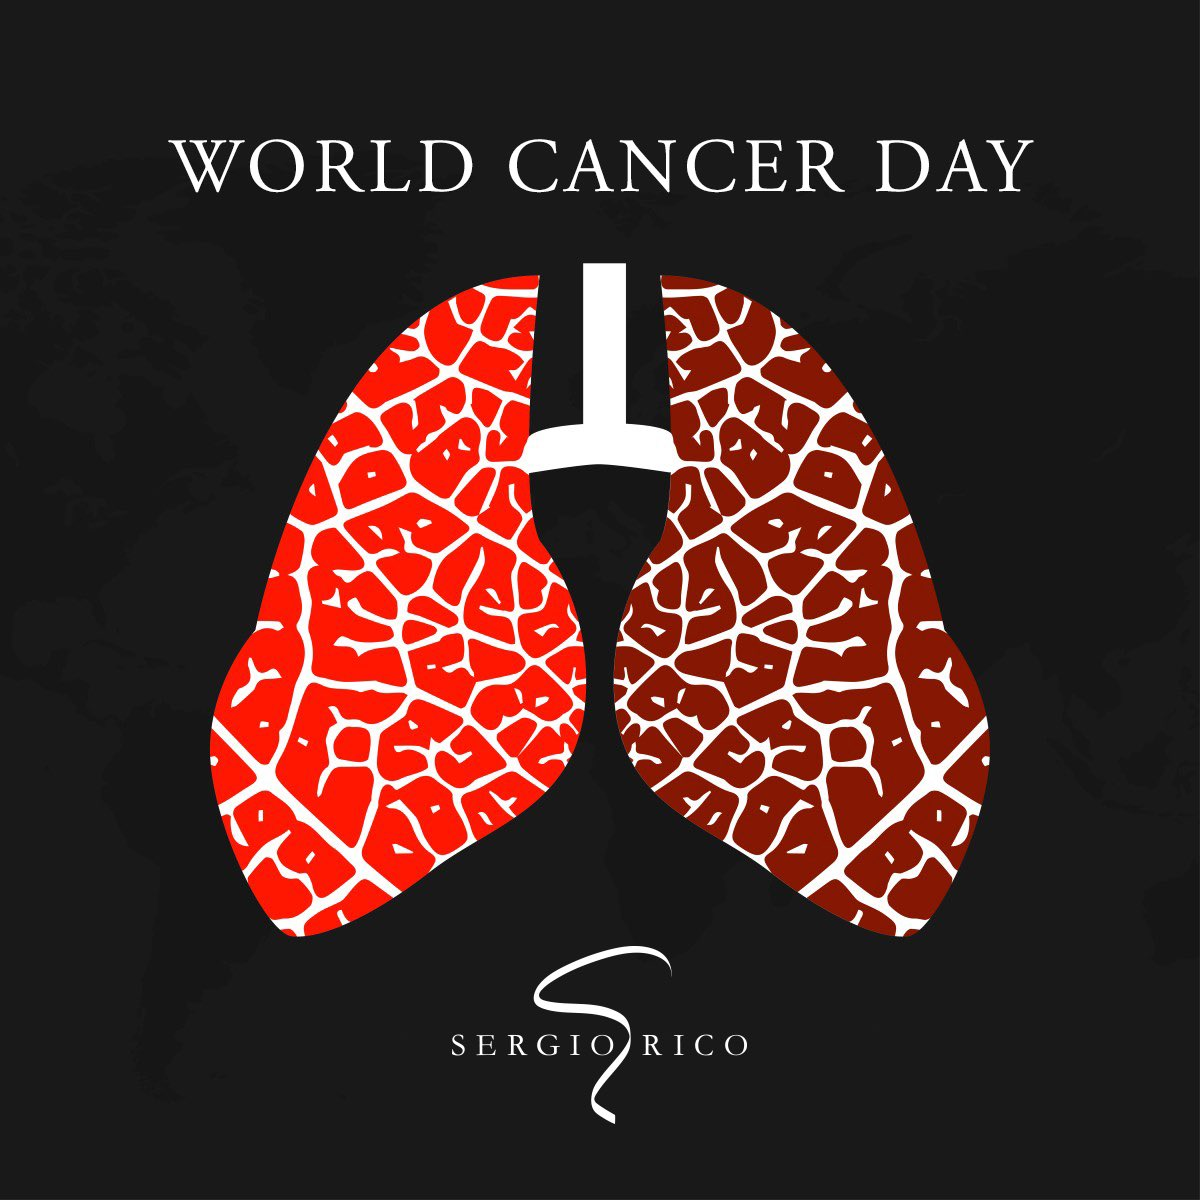 If the air runs out, we will be your lungs! Never give up  #WorldCancerDay     Si te falta el aire, nosotros seremos tus pulmones. ¡Nunca te rindas!  #DíaMundialContraElCáncer <br>http://pic.twitter.com/oNsQCHiZts